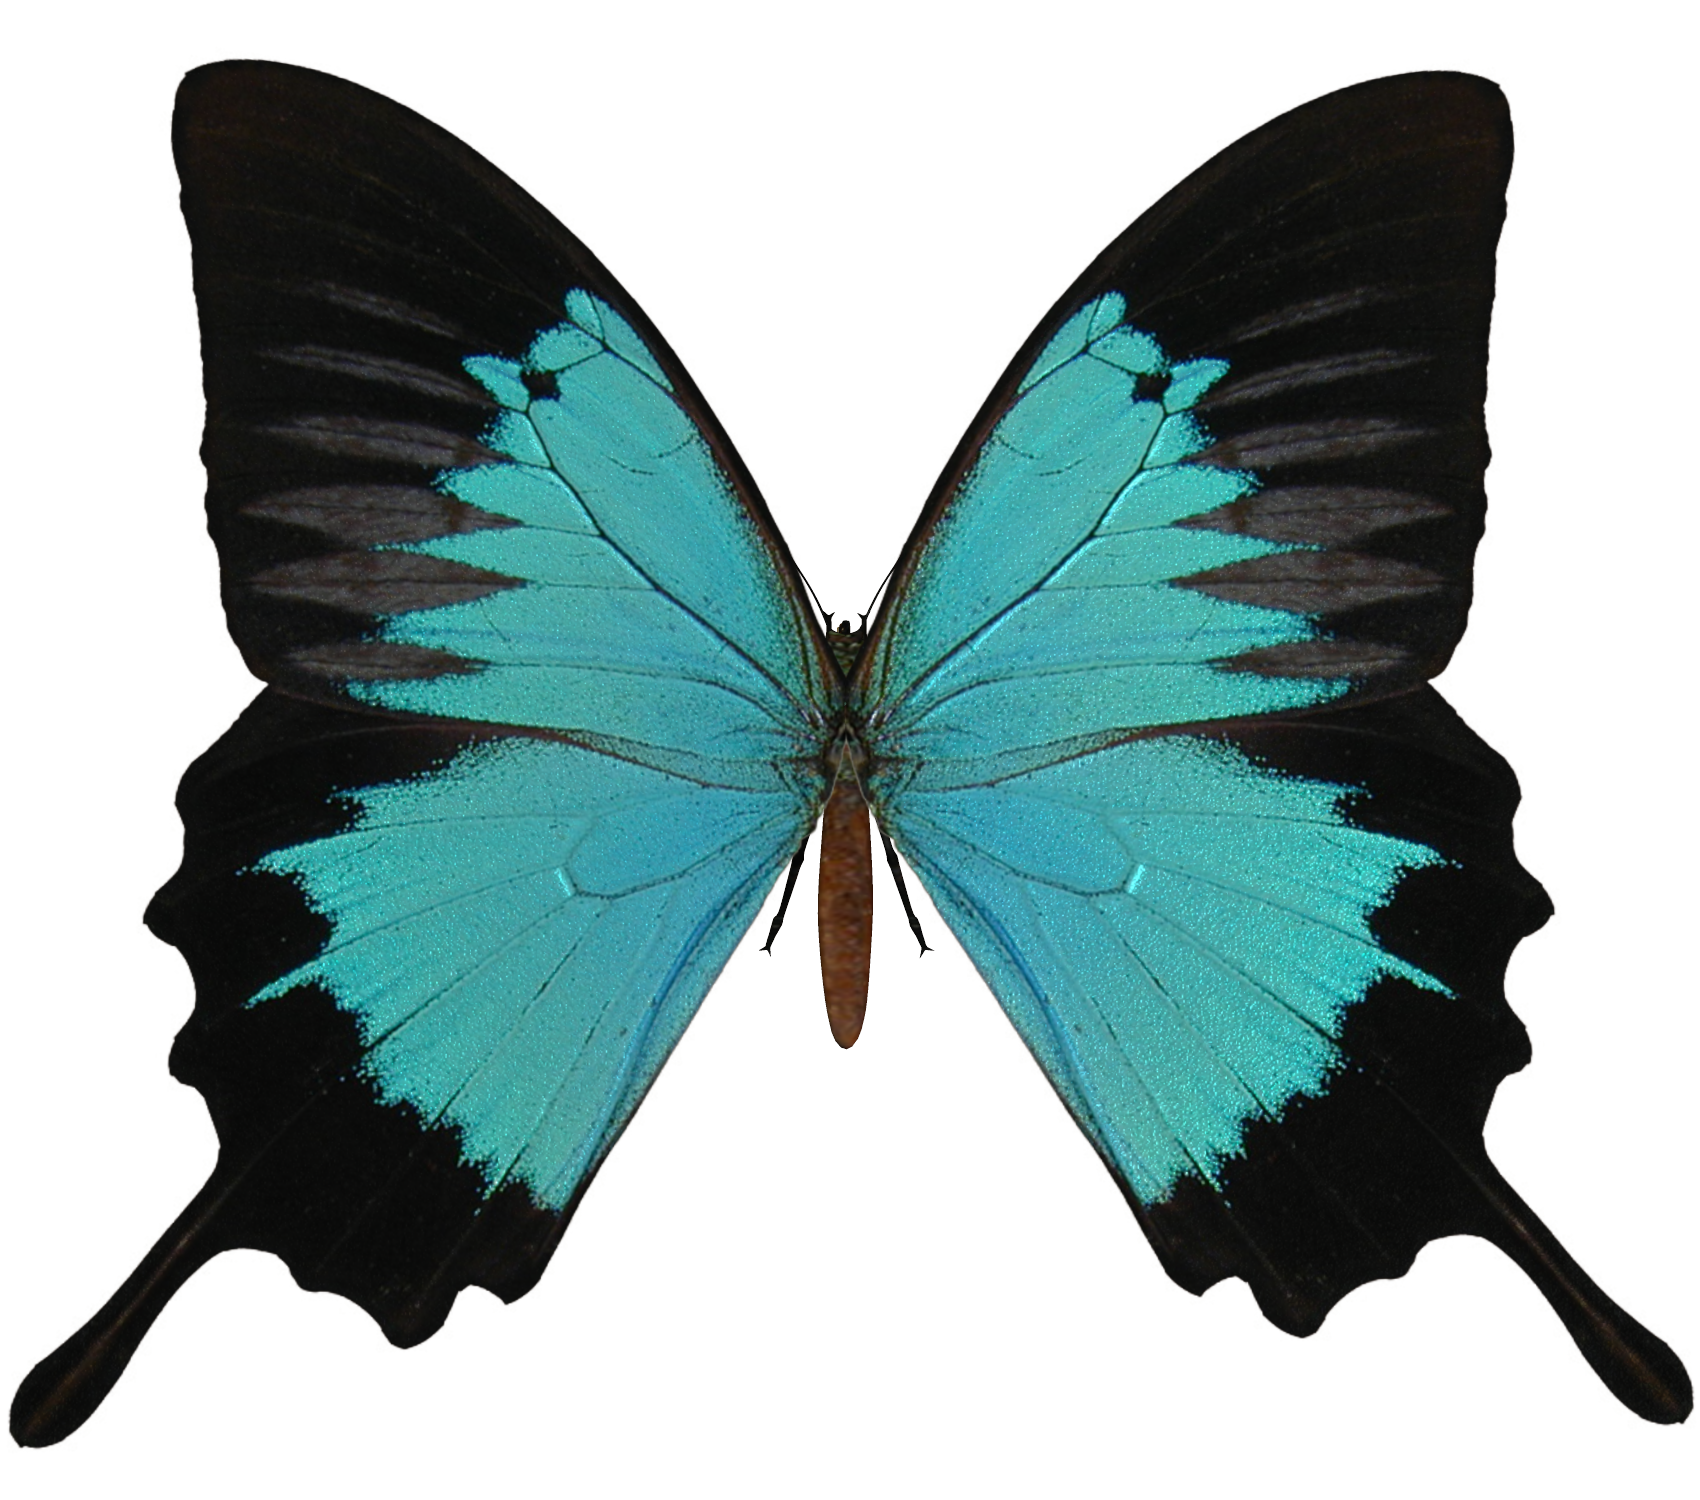 Butterflies PNG HD Free Download - 127361